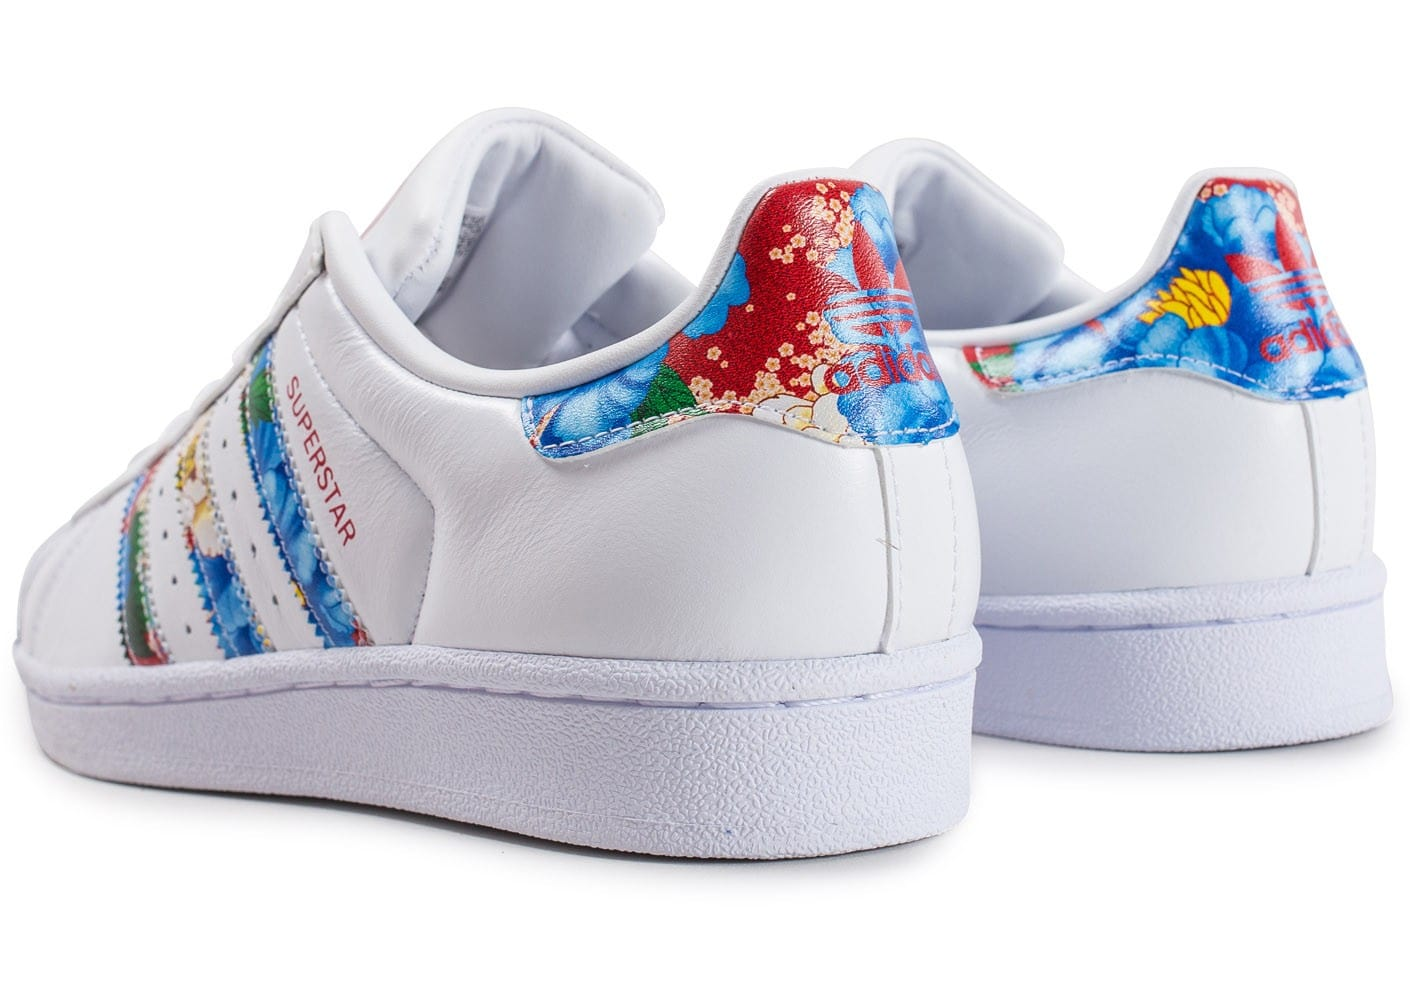 adidas Superstar W Multicolor Chaussures adidas Chausport